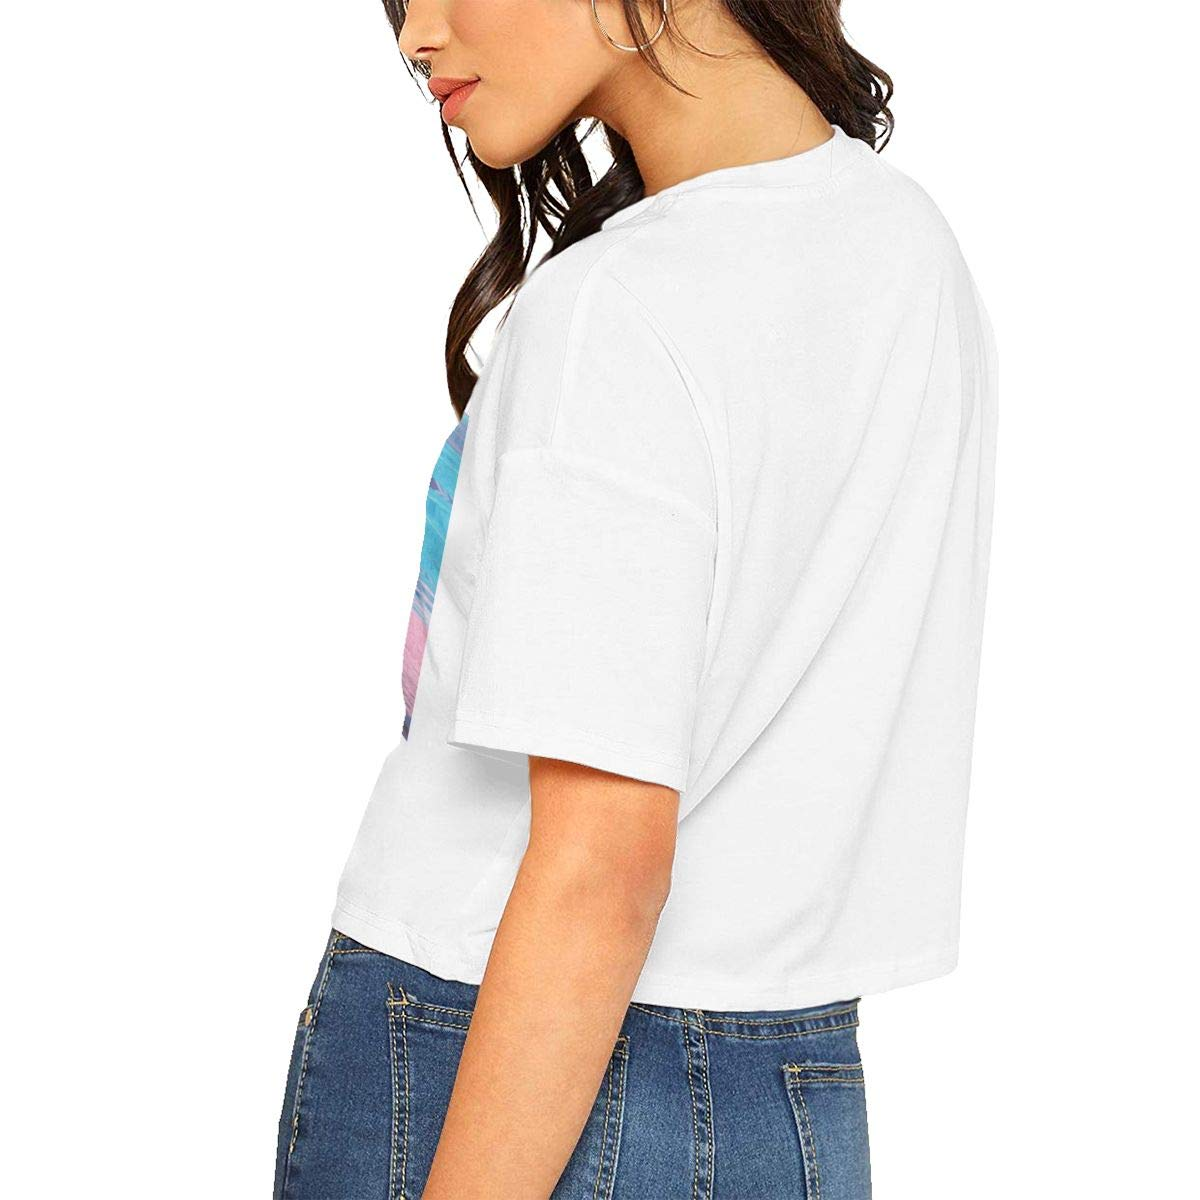 Chouven Women Crop Tops Halsey O-Neck Short Sleeve Tee Shirt